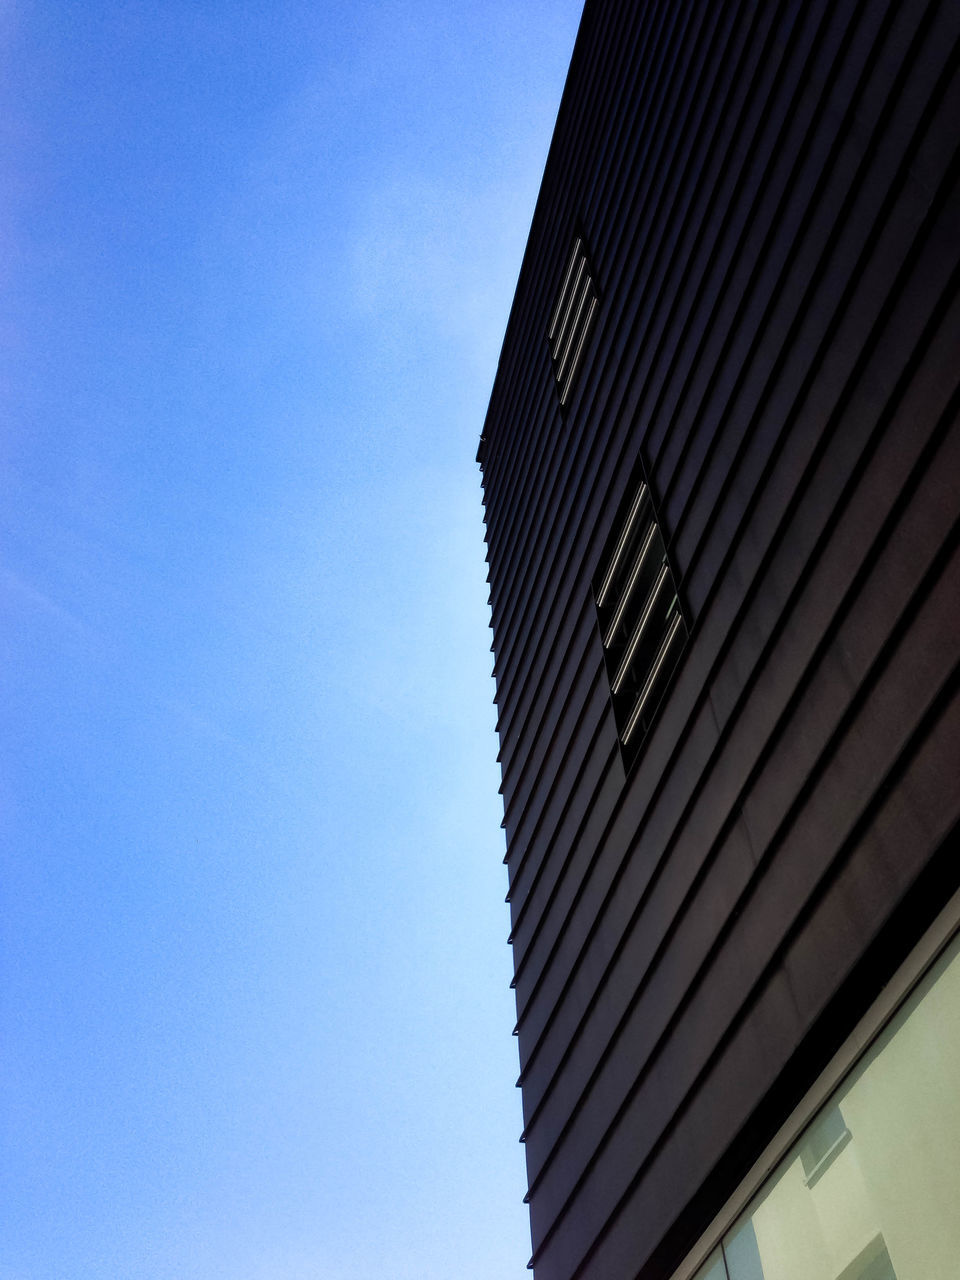 low angle view, architecture, built structure, building exterior, copy space, day, blue, no people, outdoors, clear sky, modern, sky, city, close-up